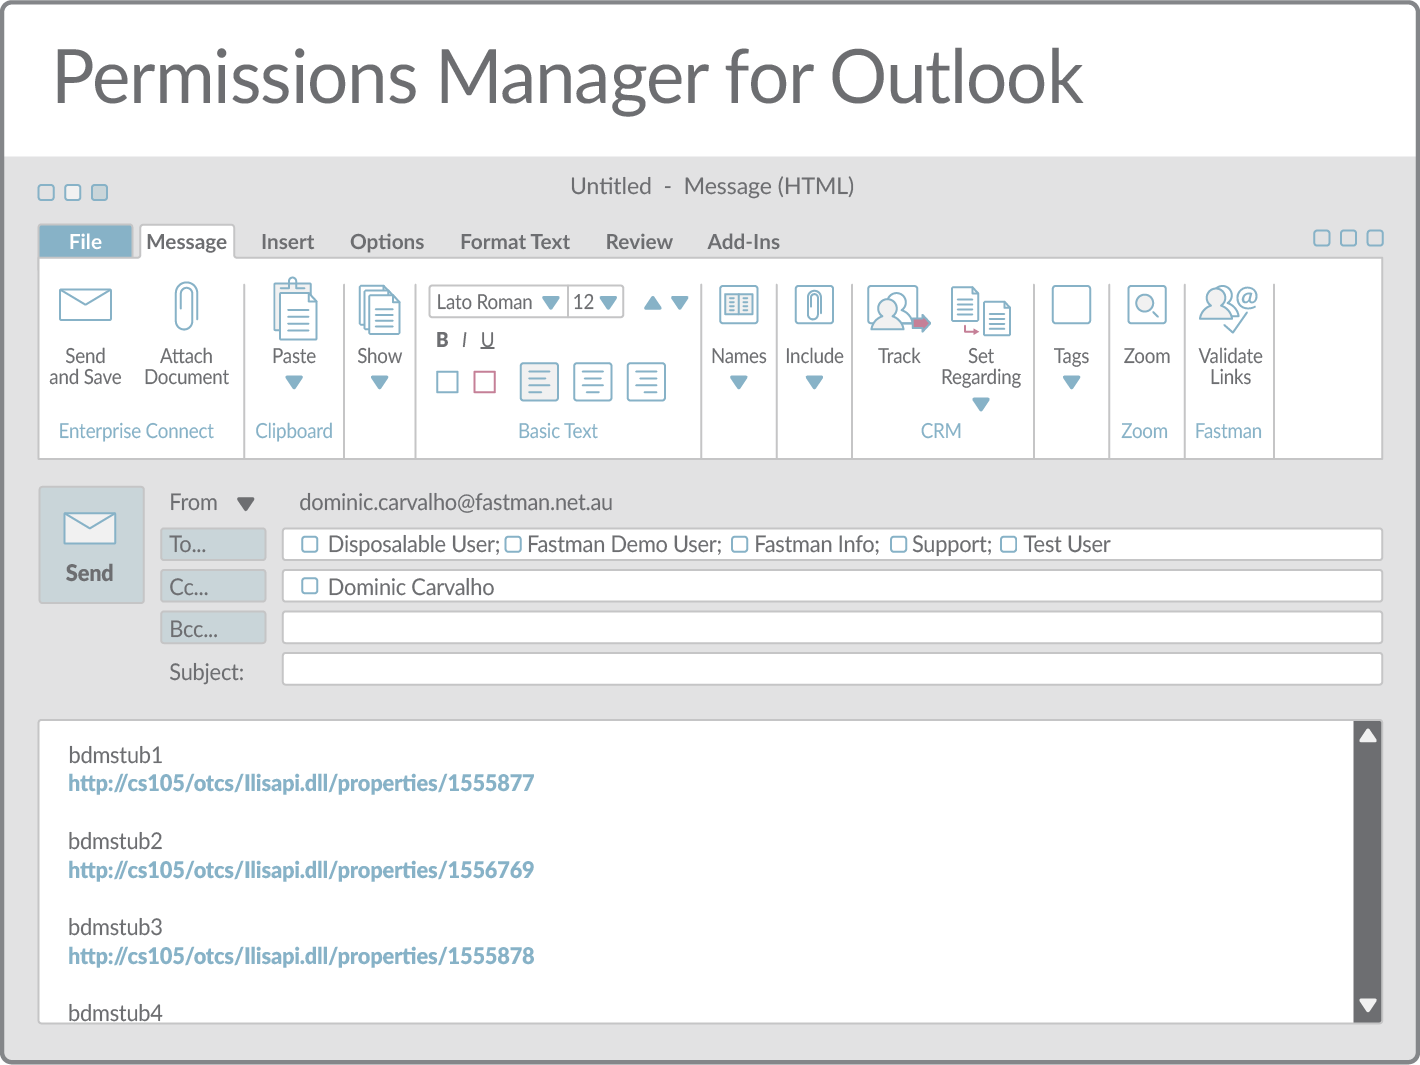 Permissions Manager for Outlook